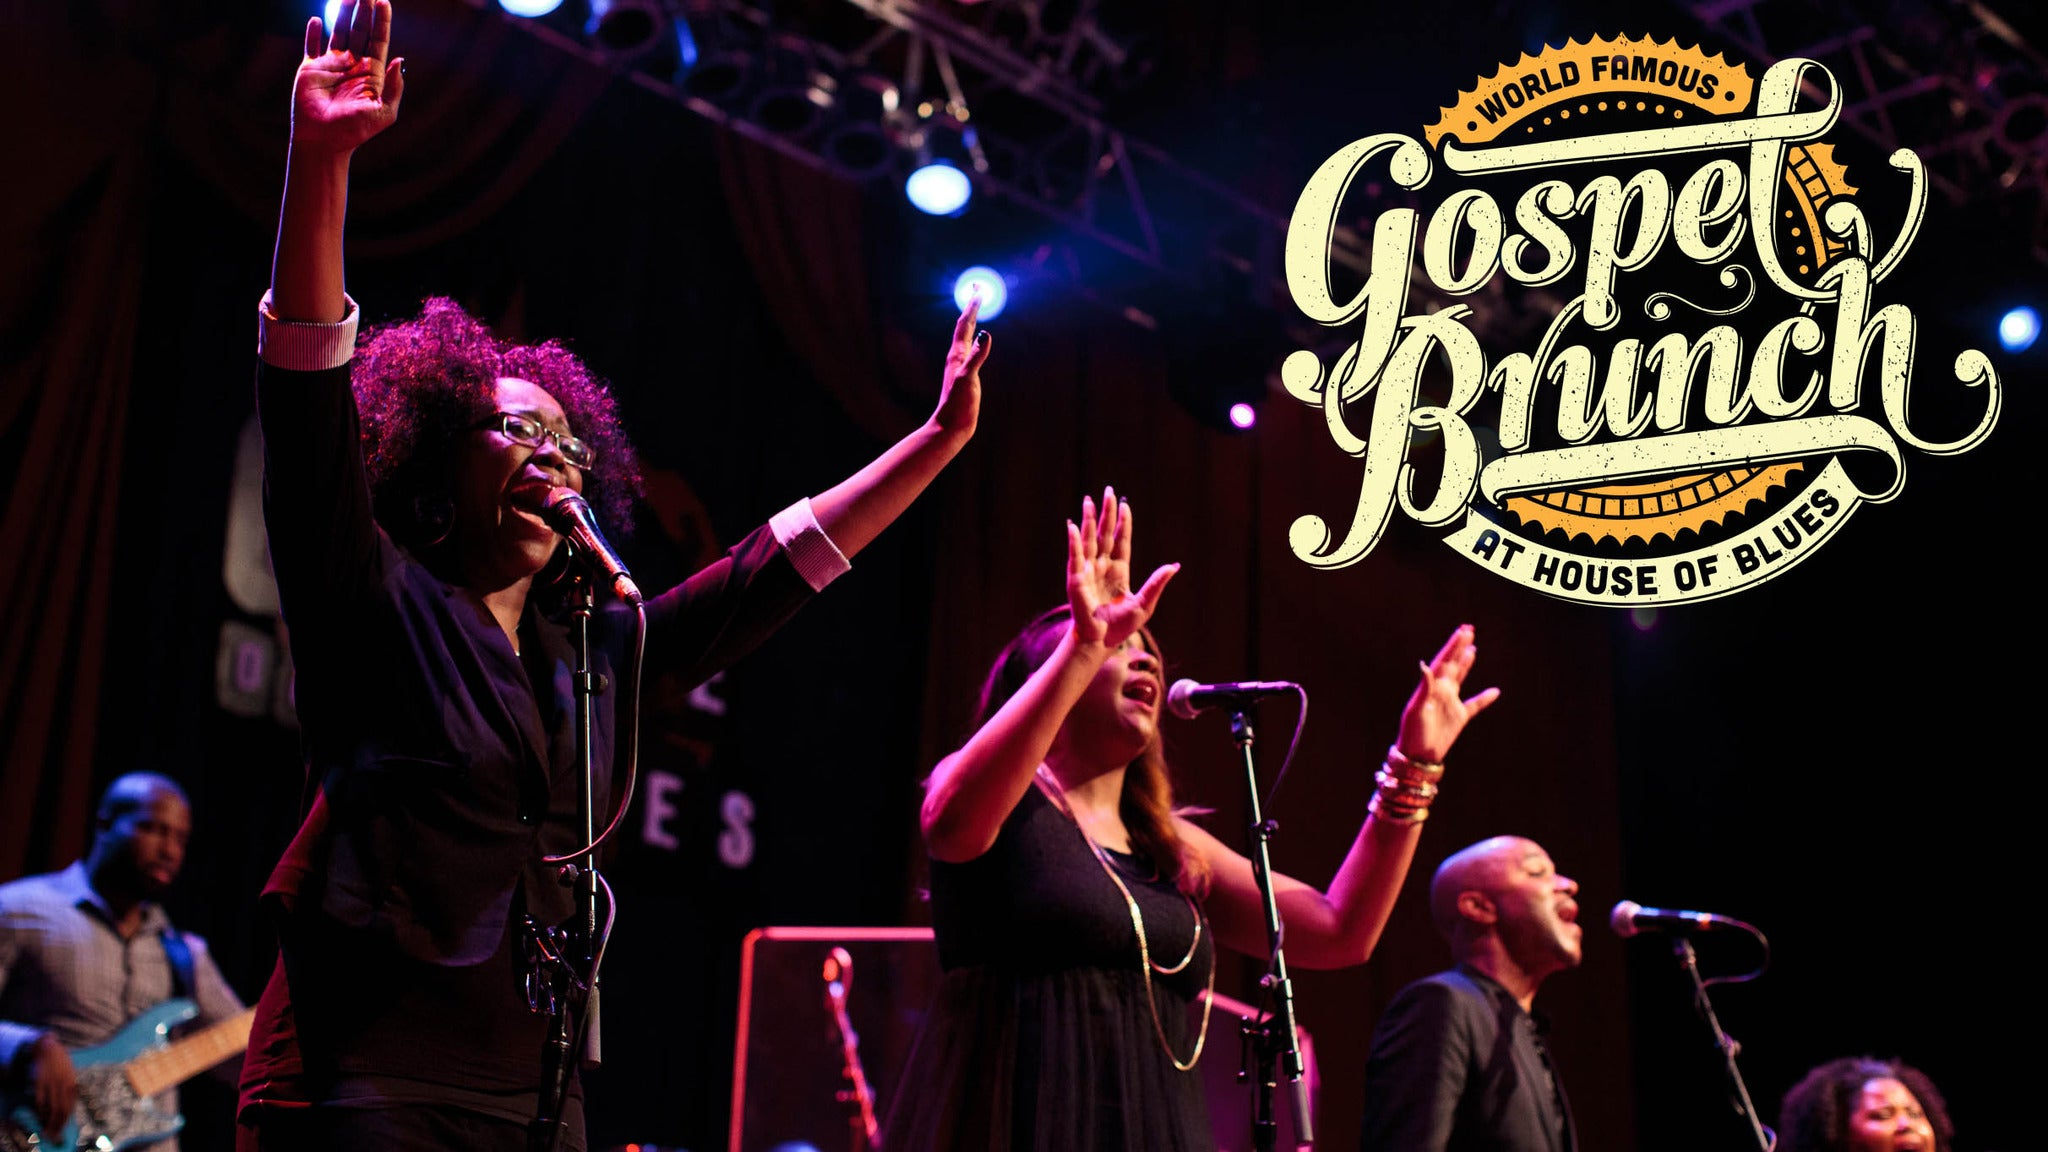 Gospel Brunch at House of Blues New Orleans - New Orleans, LA 70130